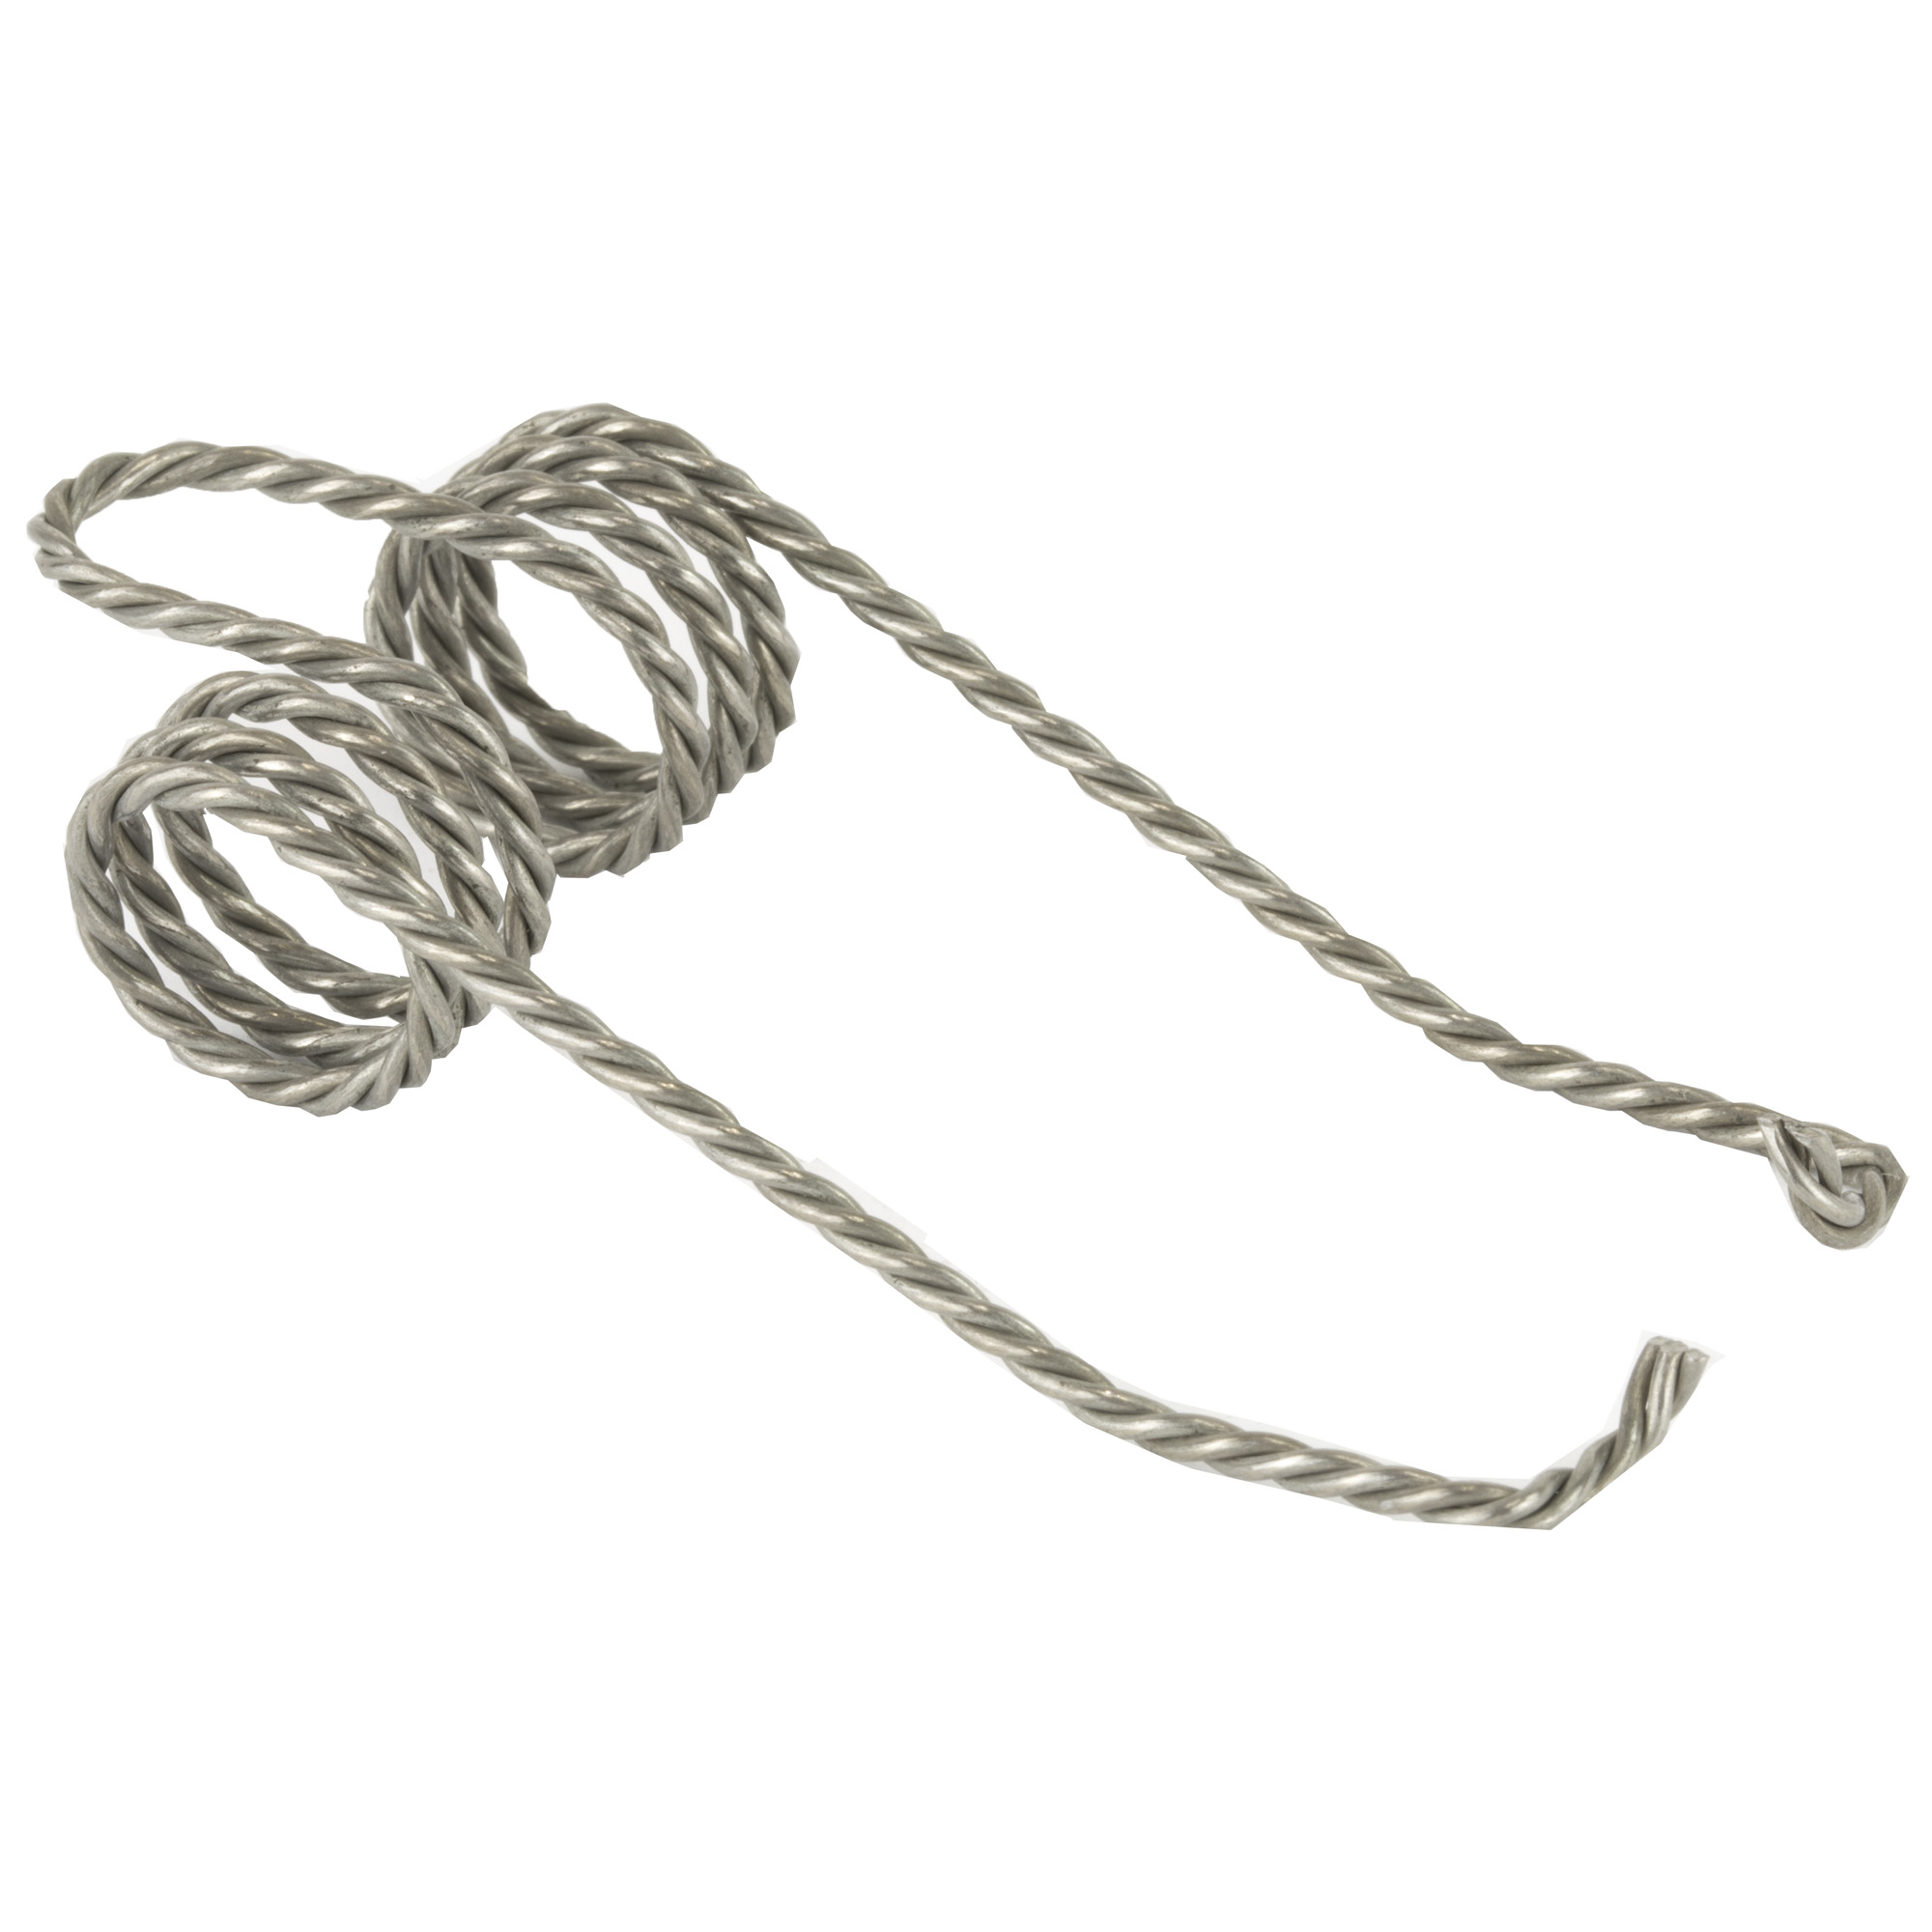 The ALG AK Braided Main Spring is a replacement spring for the AK47/74 platform rifles. This replacement option is manufactured in the United States from three strands of music wire braided together.